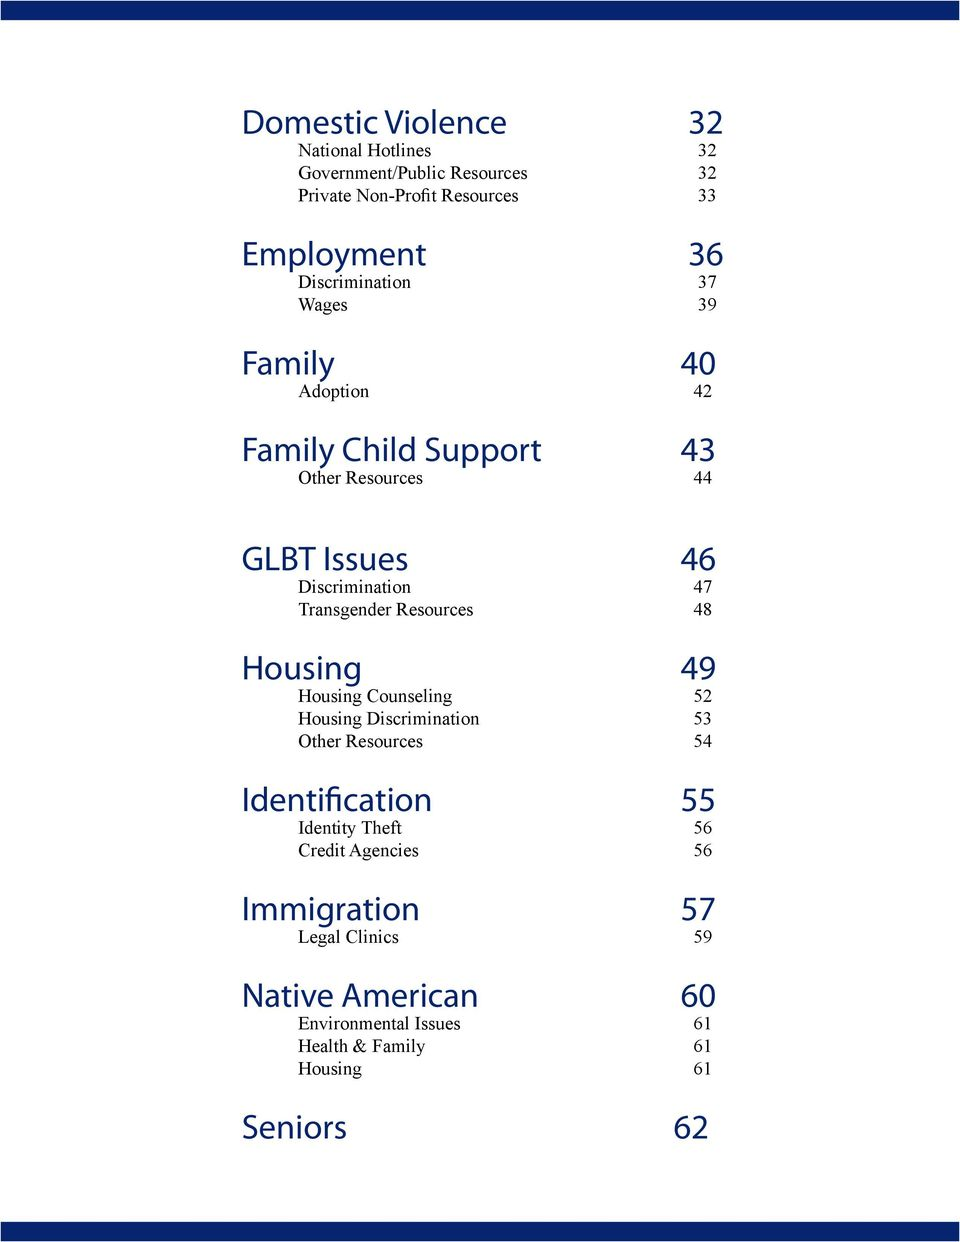 Transgender Resources 48 Housing 49 Housing Counseling 52 Housing Discrimination 53 Other Resources 54 Identification 55 Identity